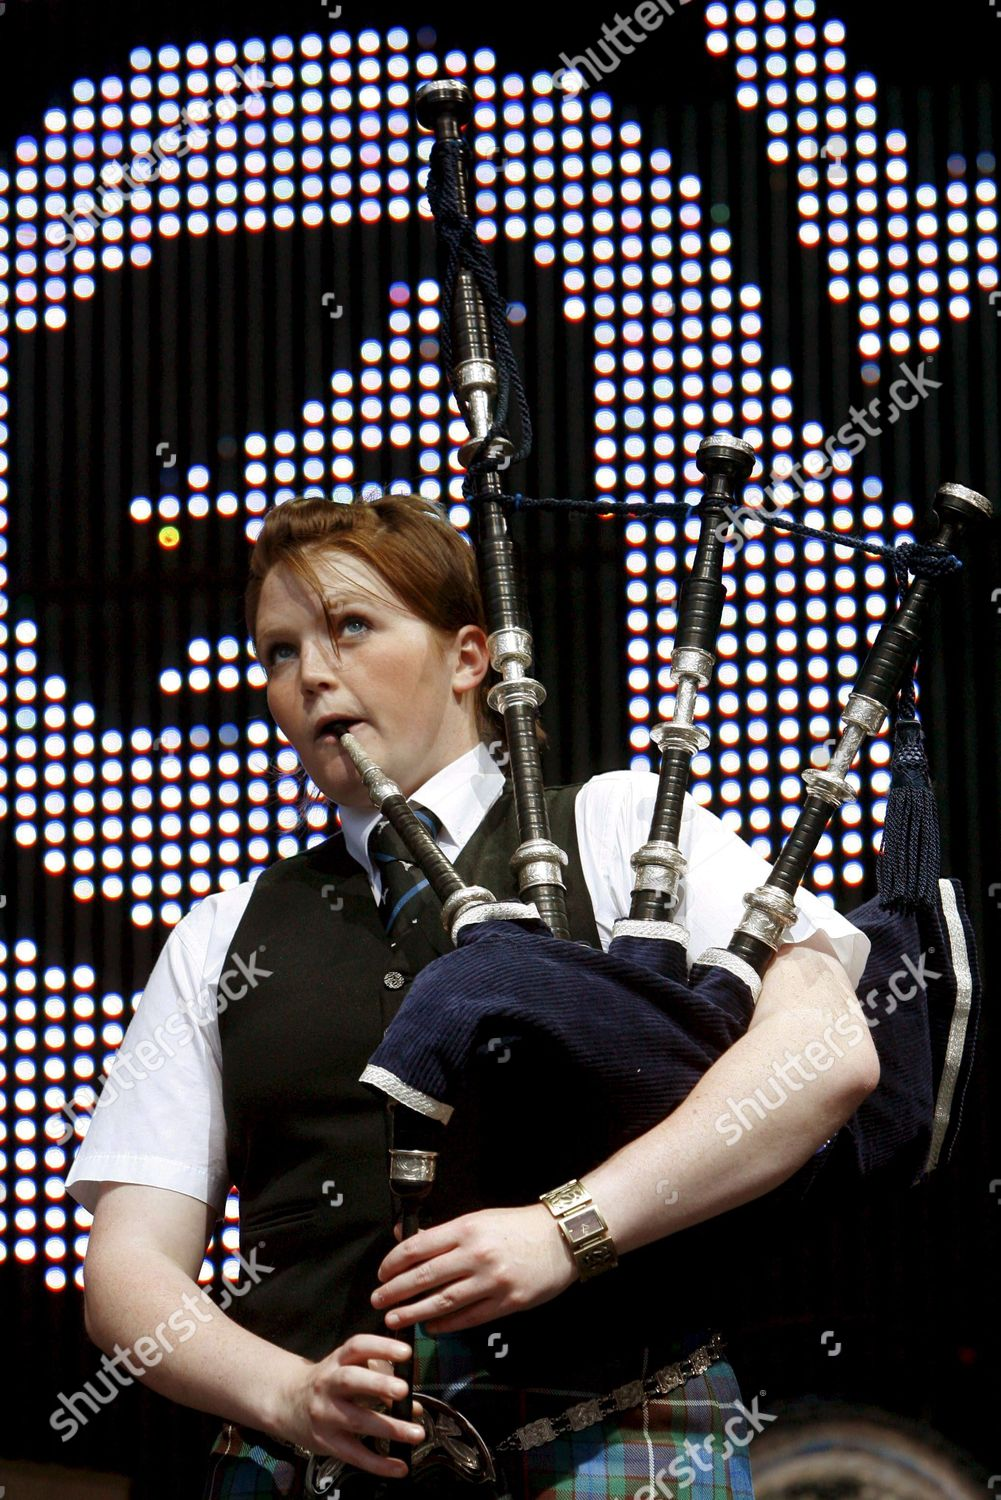 Member National Youth Pipe Band Scotland Plays Editorial Stock Photo